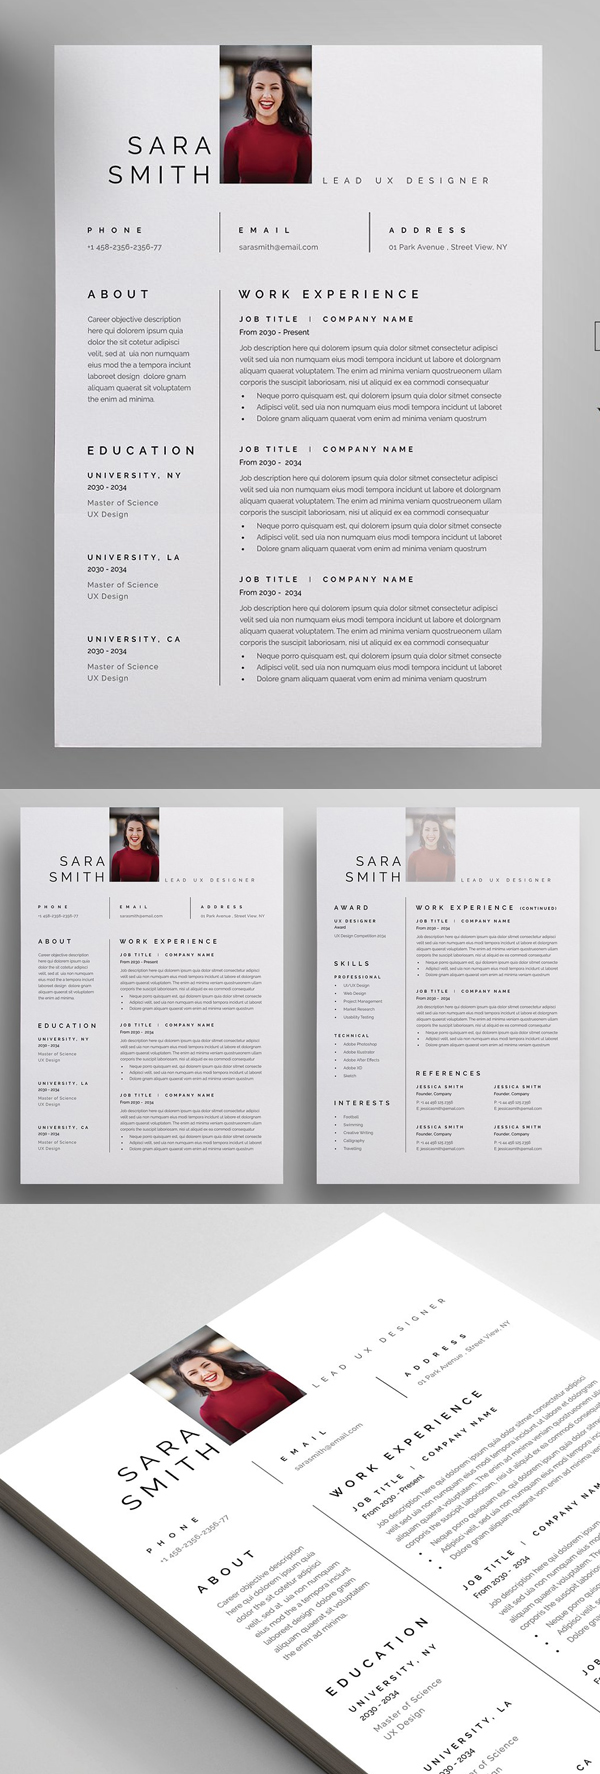 50 Best Resume Templates Of 2020 - 23